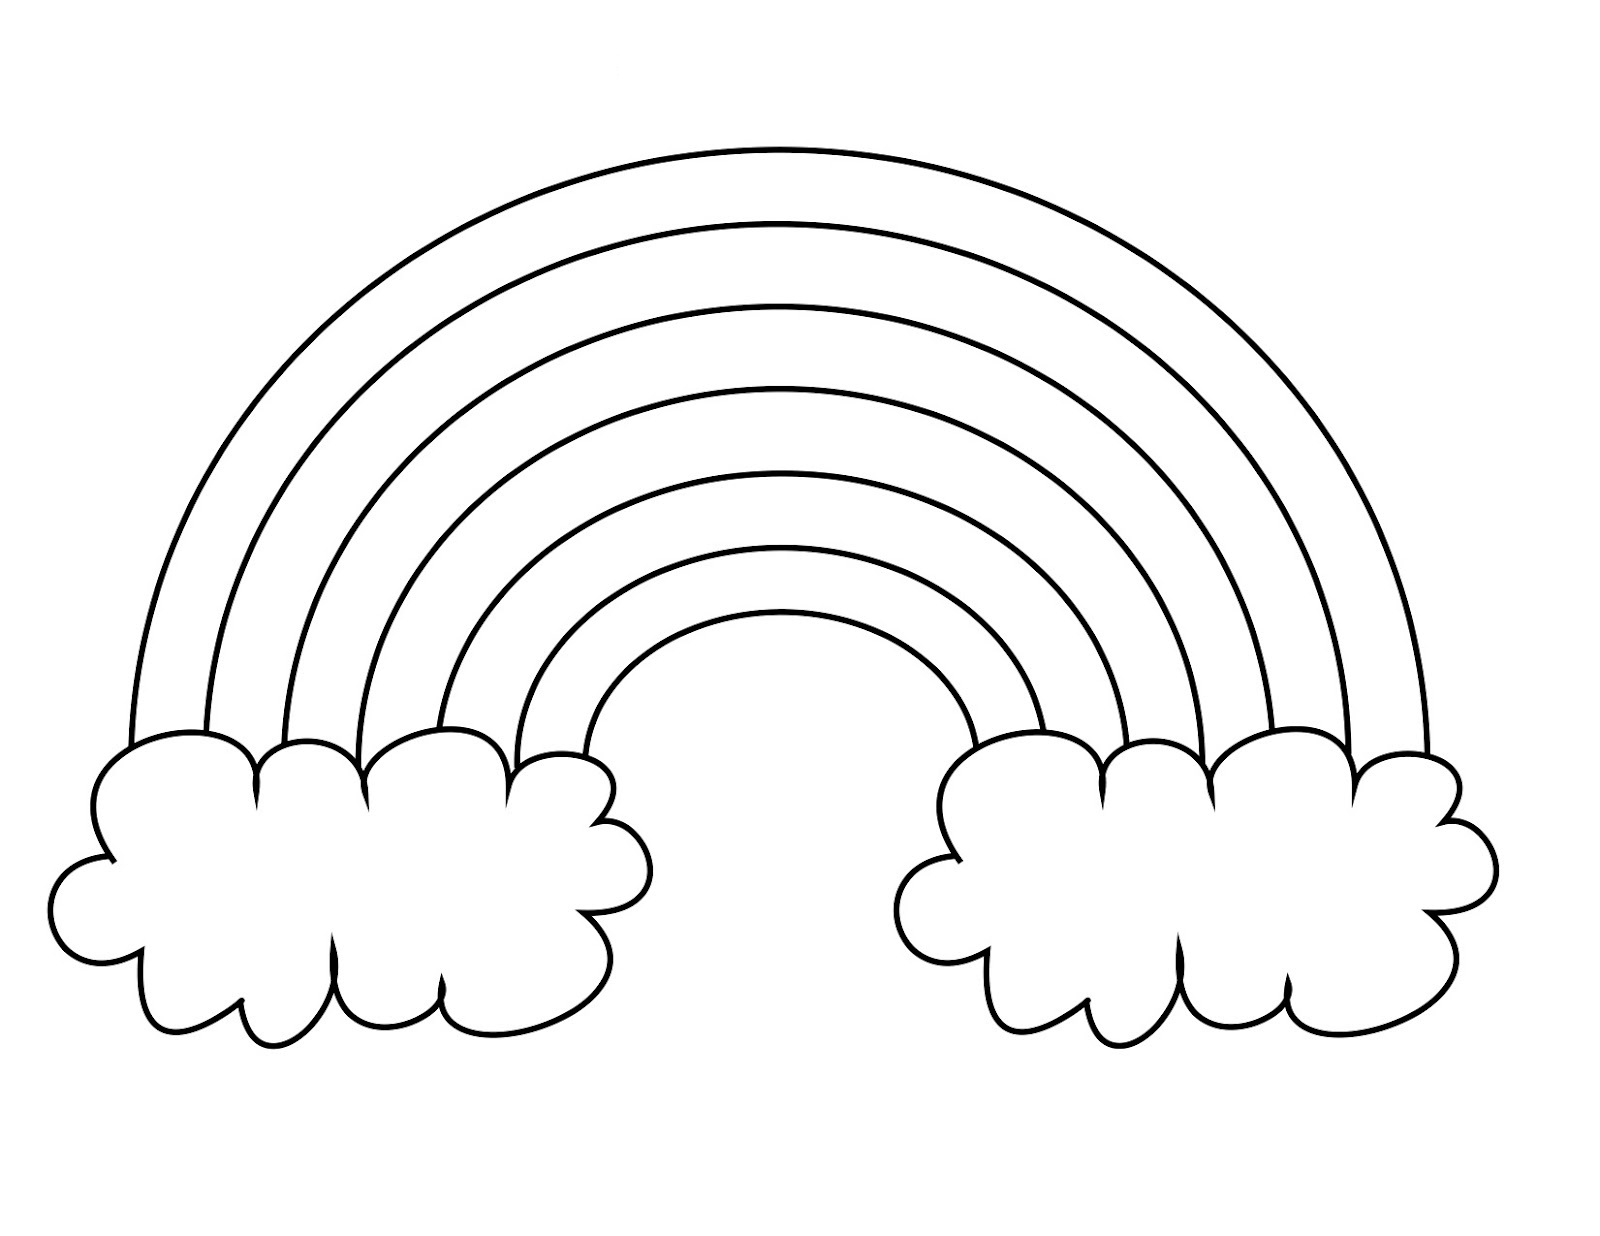 colouring sheet rainbow rainbow coloring pages only coloring pages sheet rainbow colouring